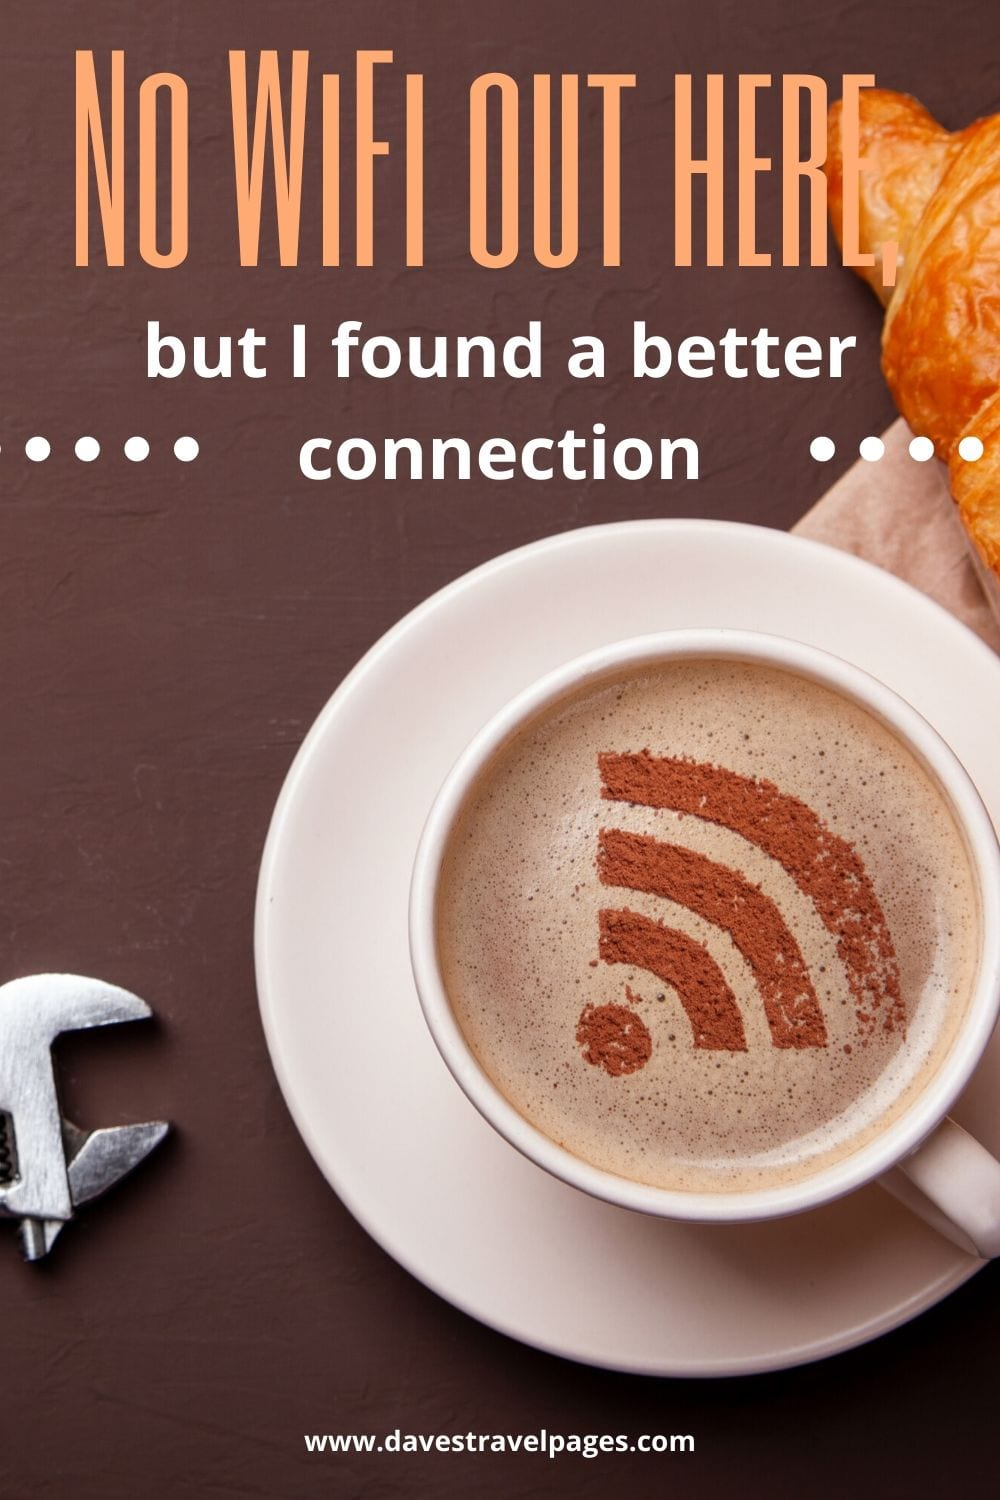 """Digital Nomad Captions: """"No WiFi out here, but I found a better connection."""""""